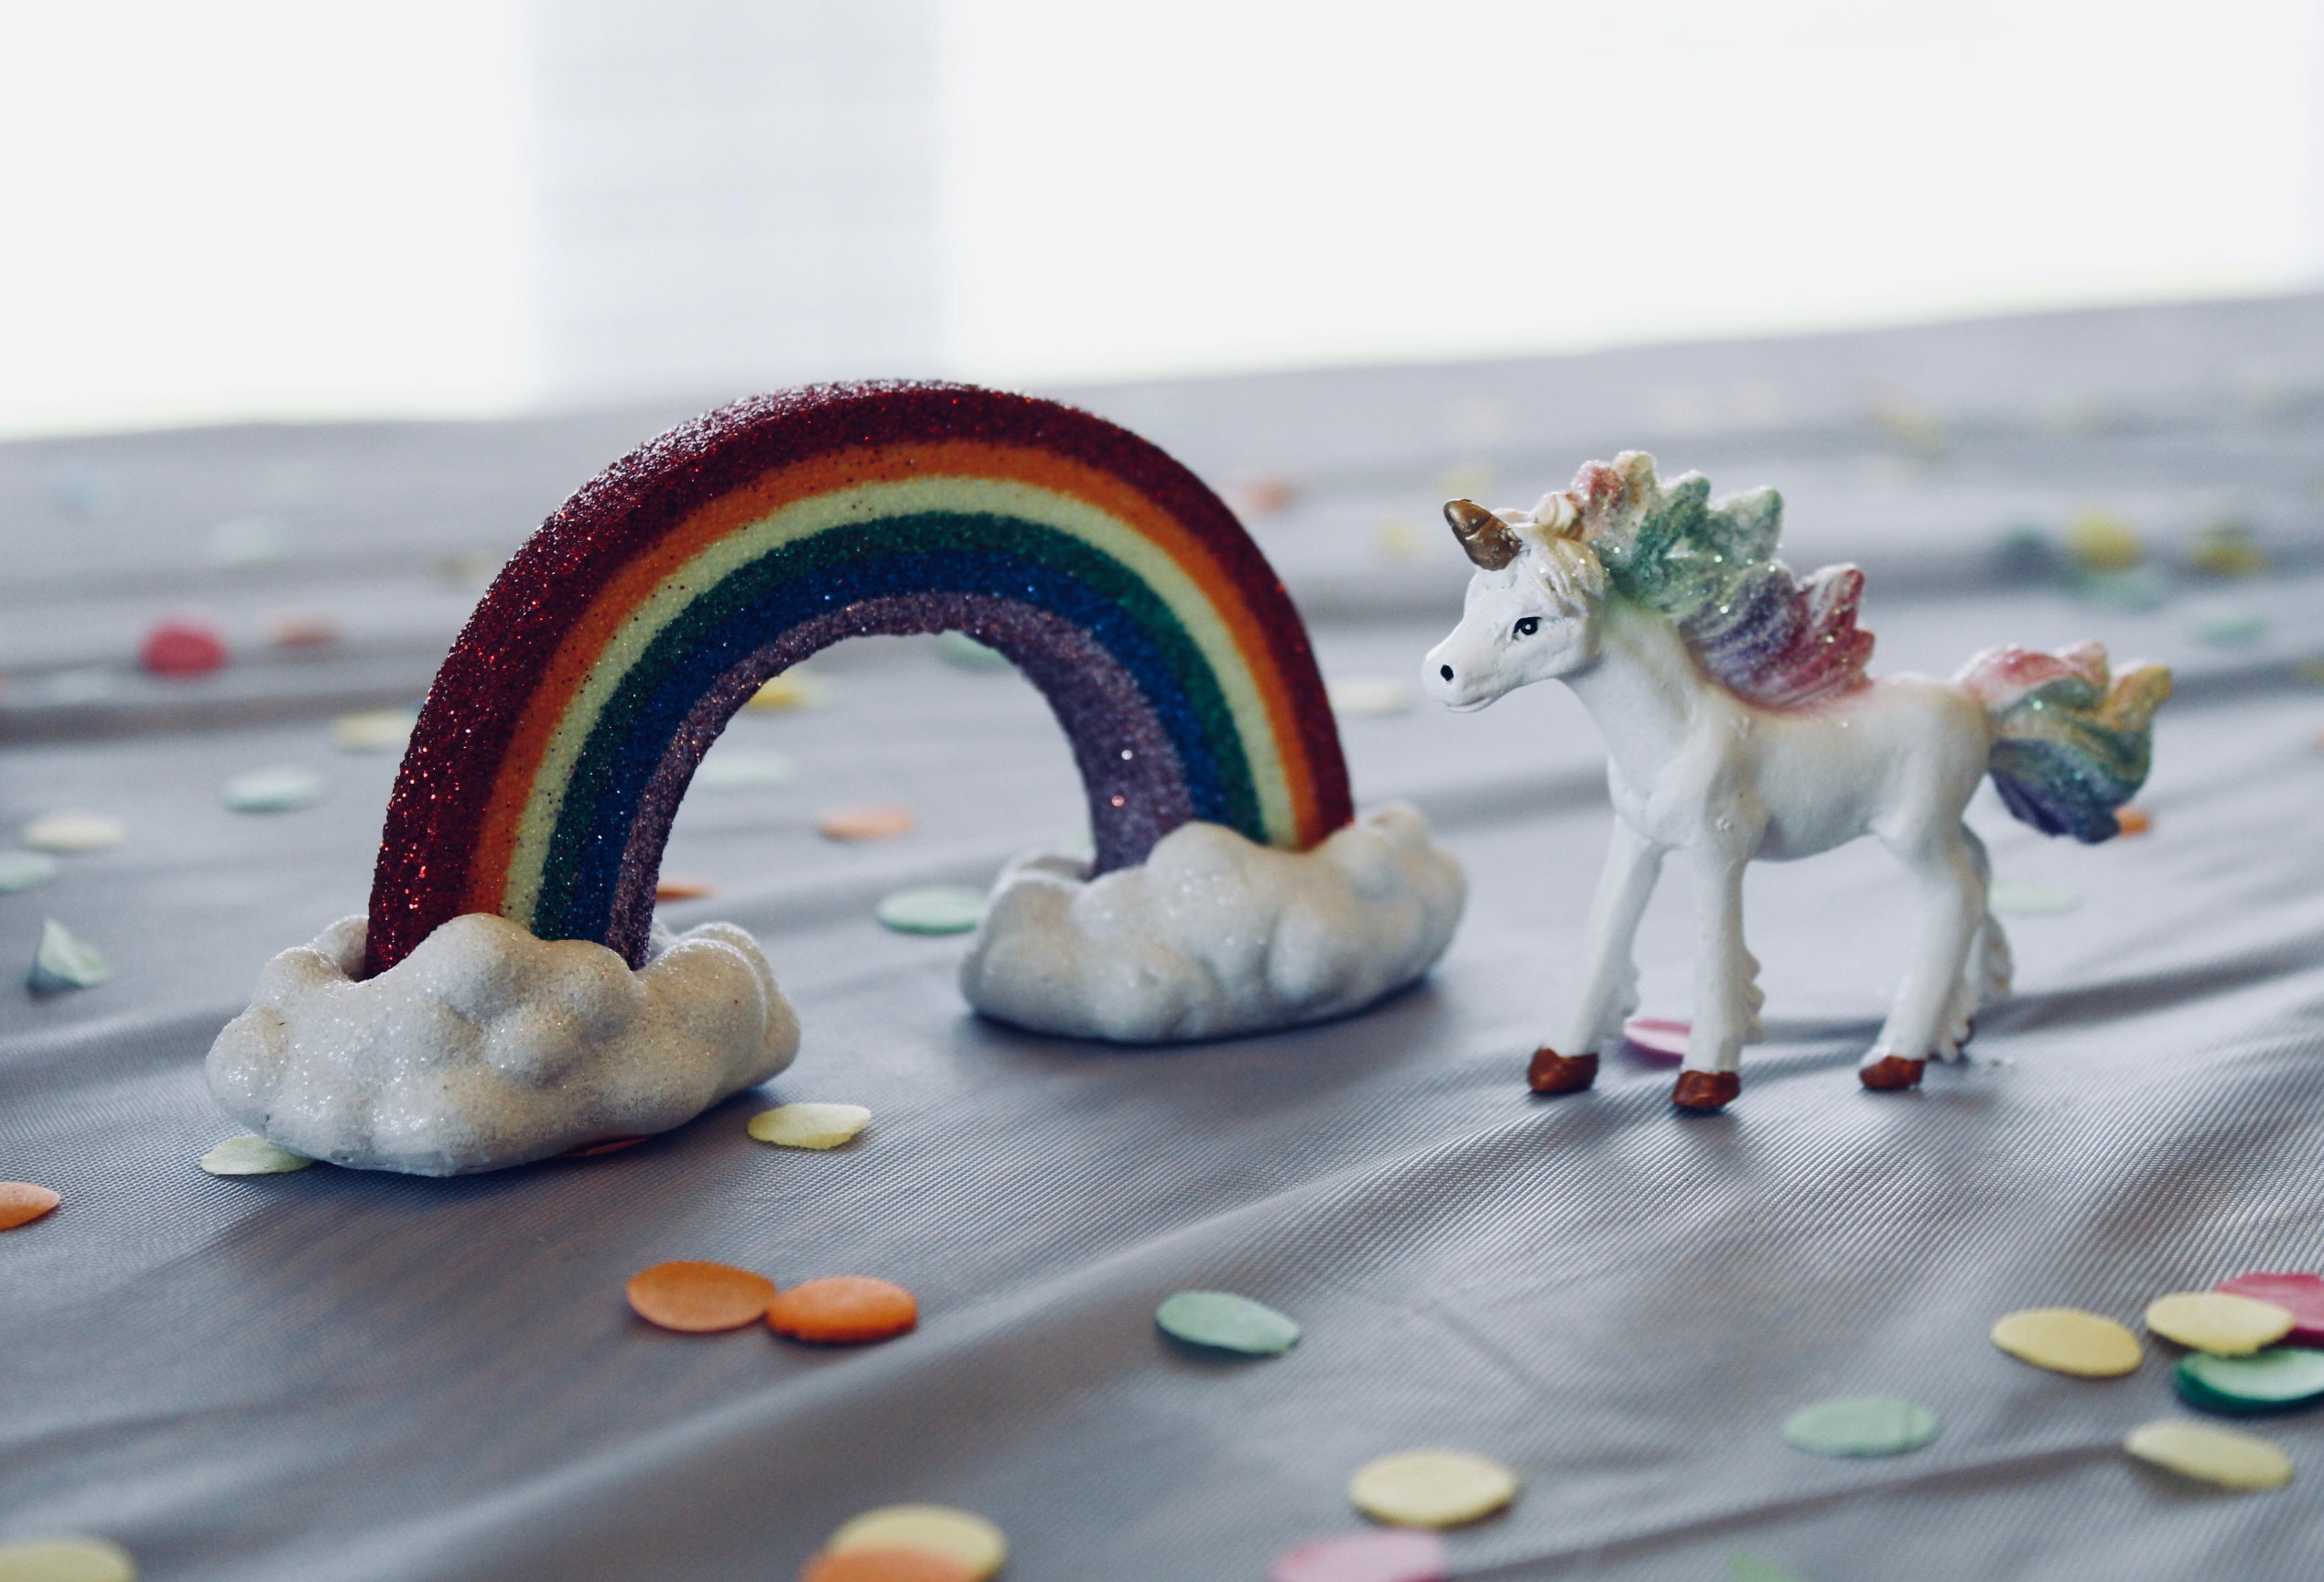 rainbow figurine and unicorn figurine